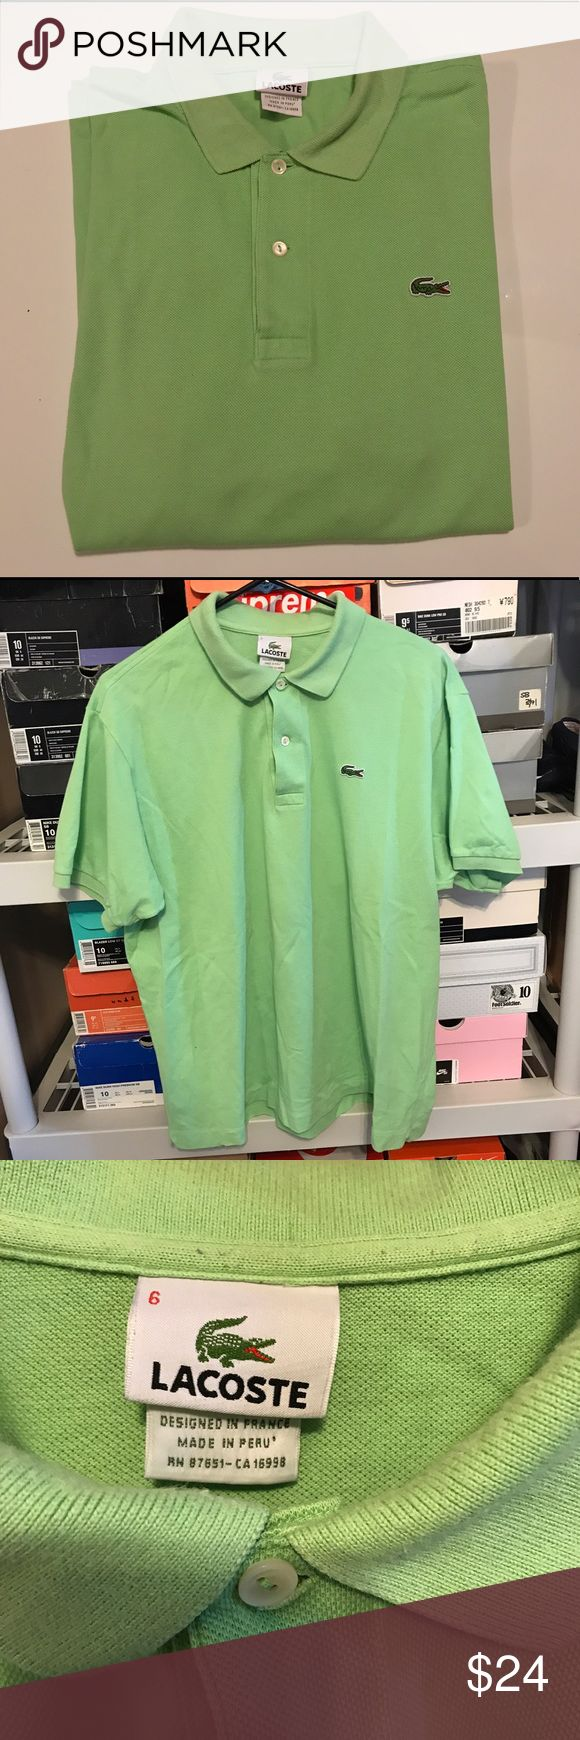 Mens lime green Lacoste Polo Size 6 Mens Lacoste lime green Polo Shirt   Size 6 (refer to measurements)   Good condition slight fading!   Pit To Pit: 61cm.   Neck To Bottom:70cm.   All measurements are taking with items laying flat!   If you have any questions please message me thanks!   Check out my other listings! Lacoste Shirts Polos